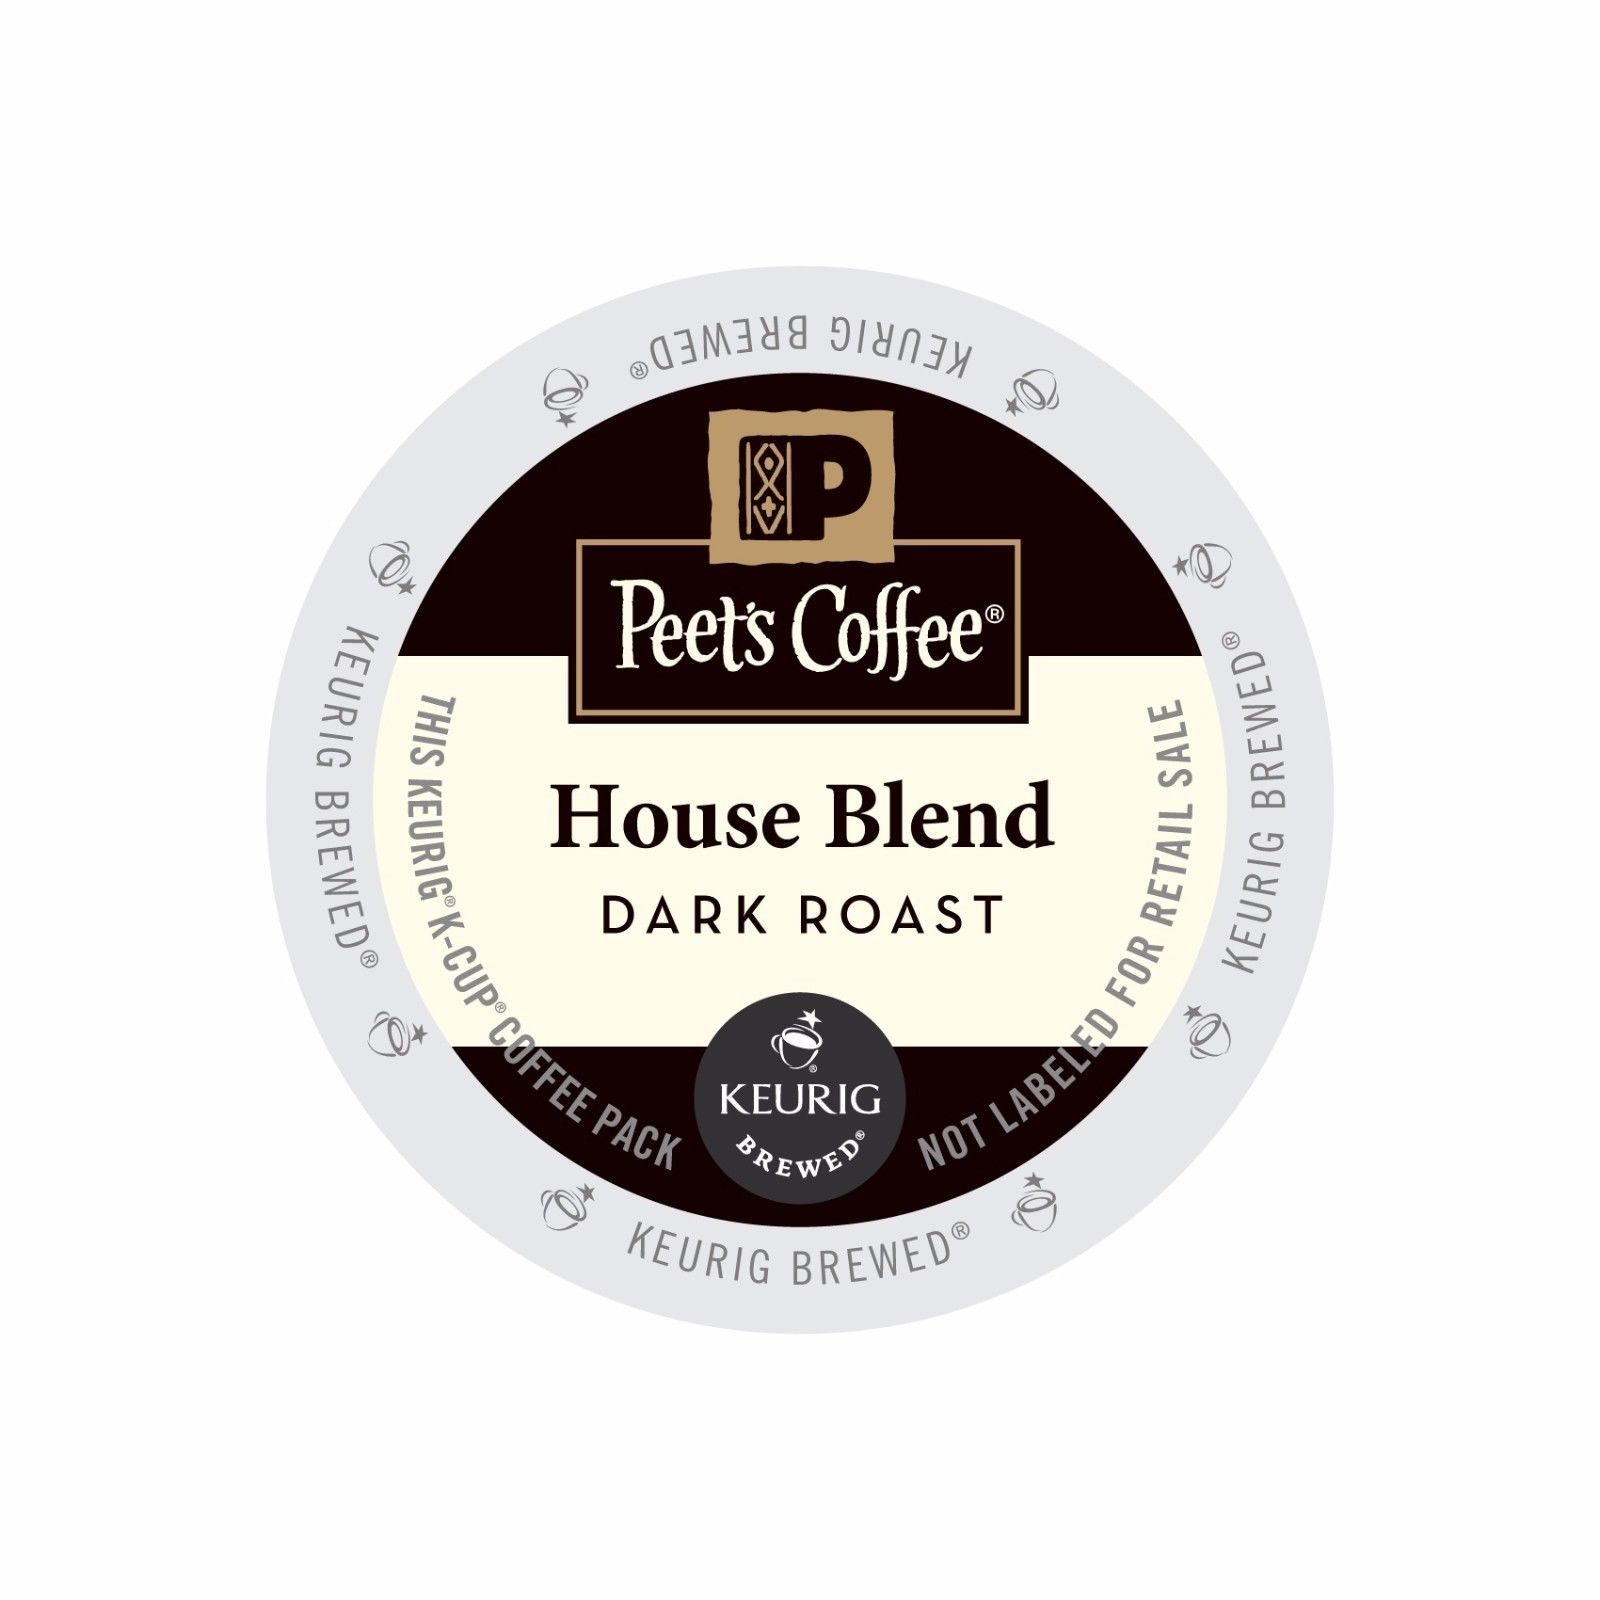 Peet's Coffee House Blend Coffee, 66 count K cups, FREE SHIPPING